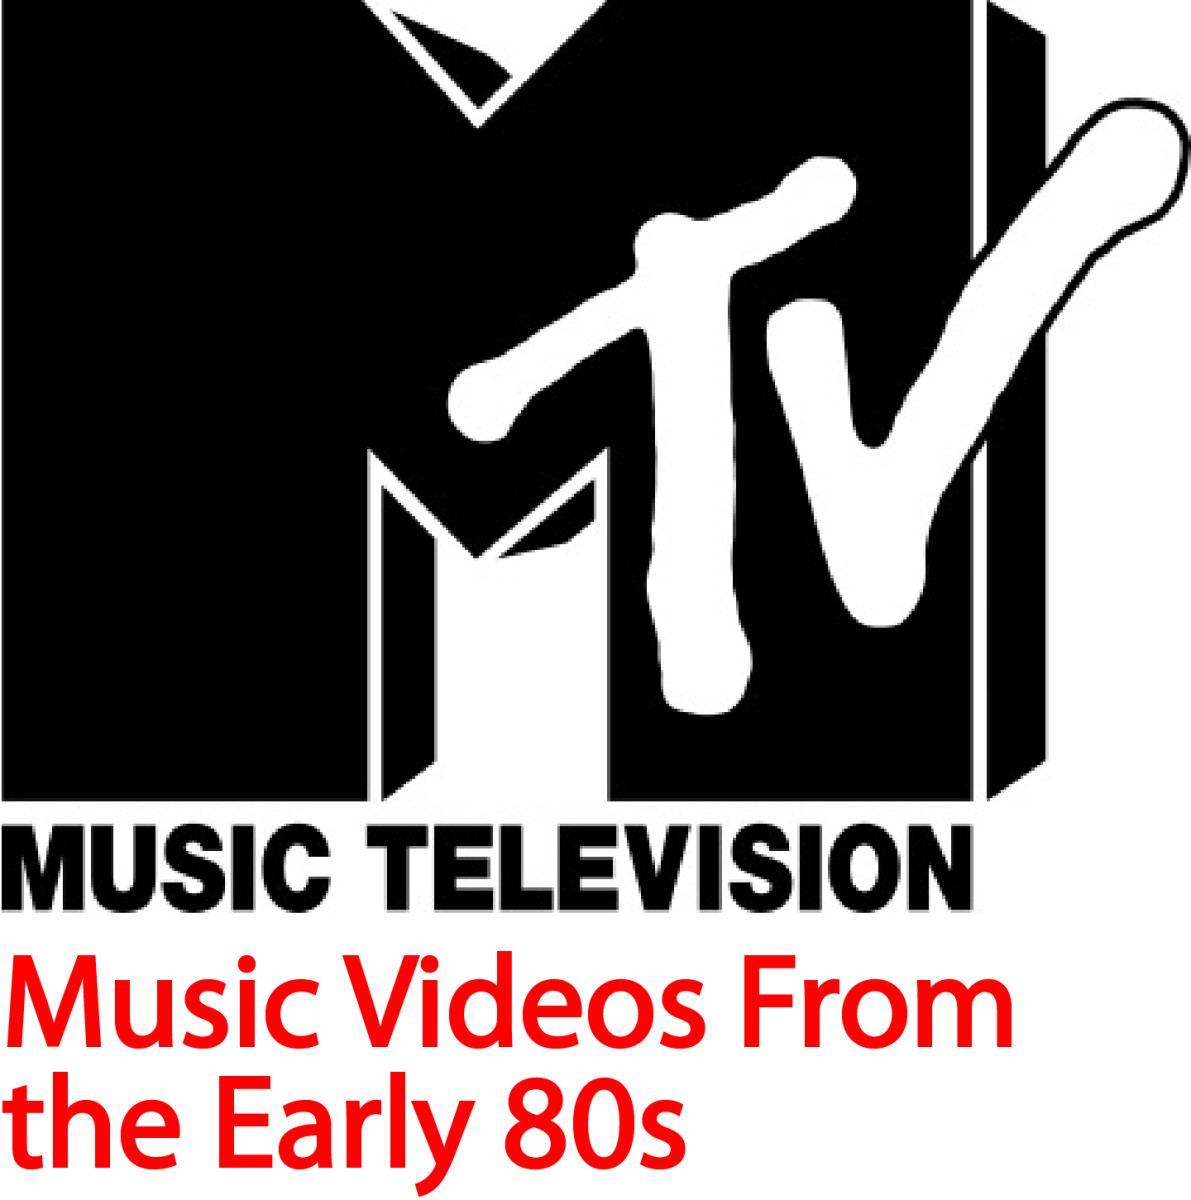 11 MTV Music Videos From the Early 80s